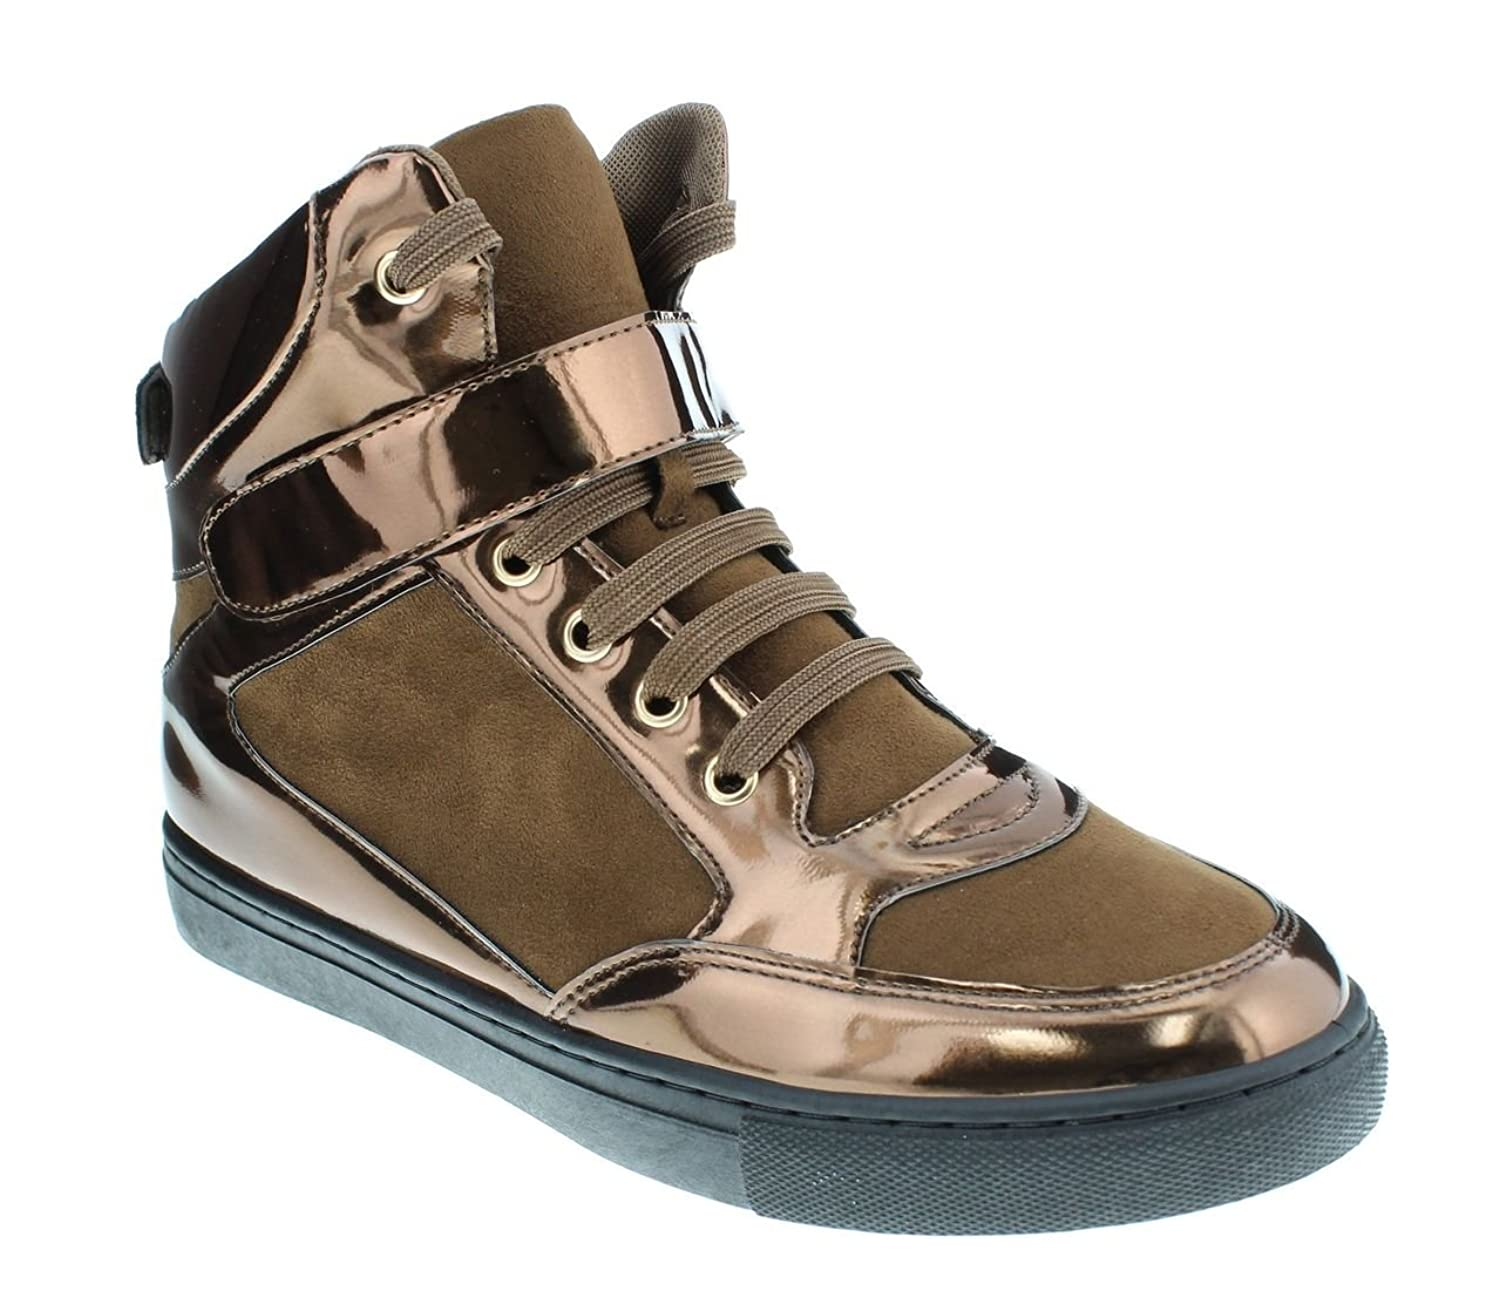 549b8cc1473e Moca Sneaker-02 Women's Casual Faux Leather High Top Sneaker ...